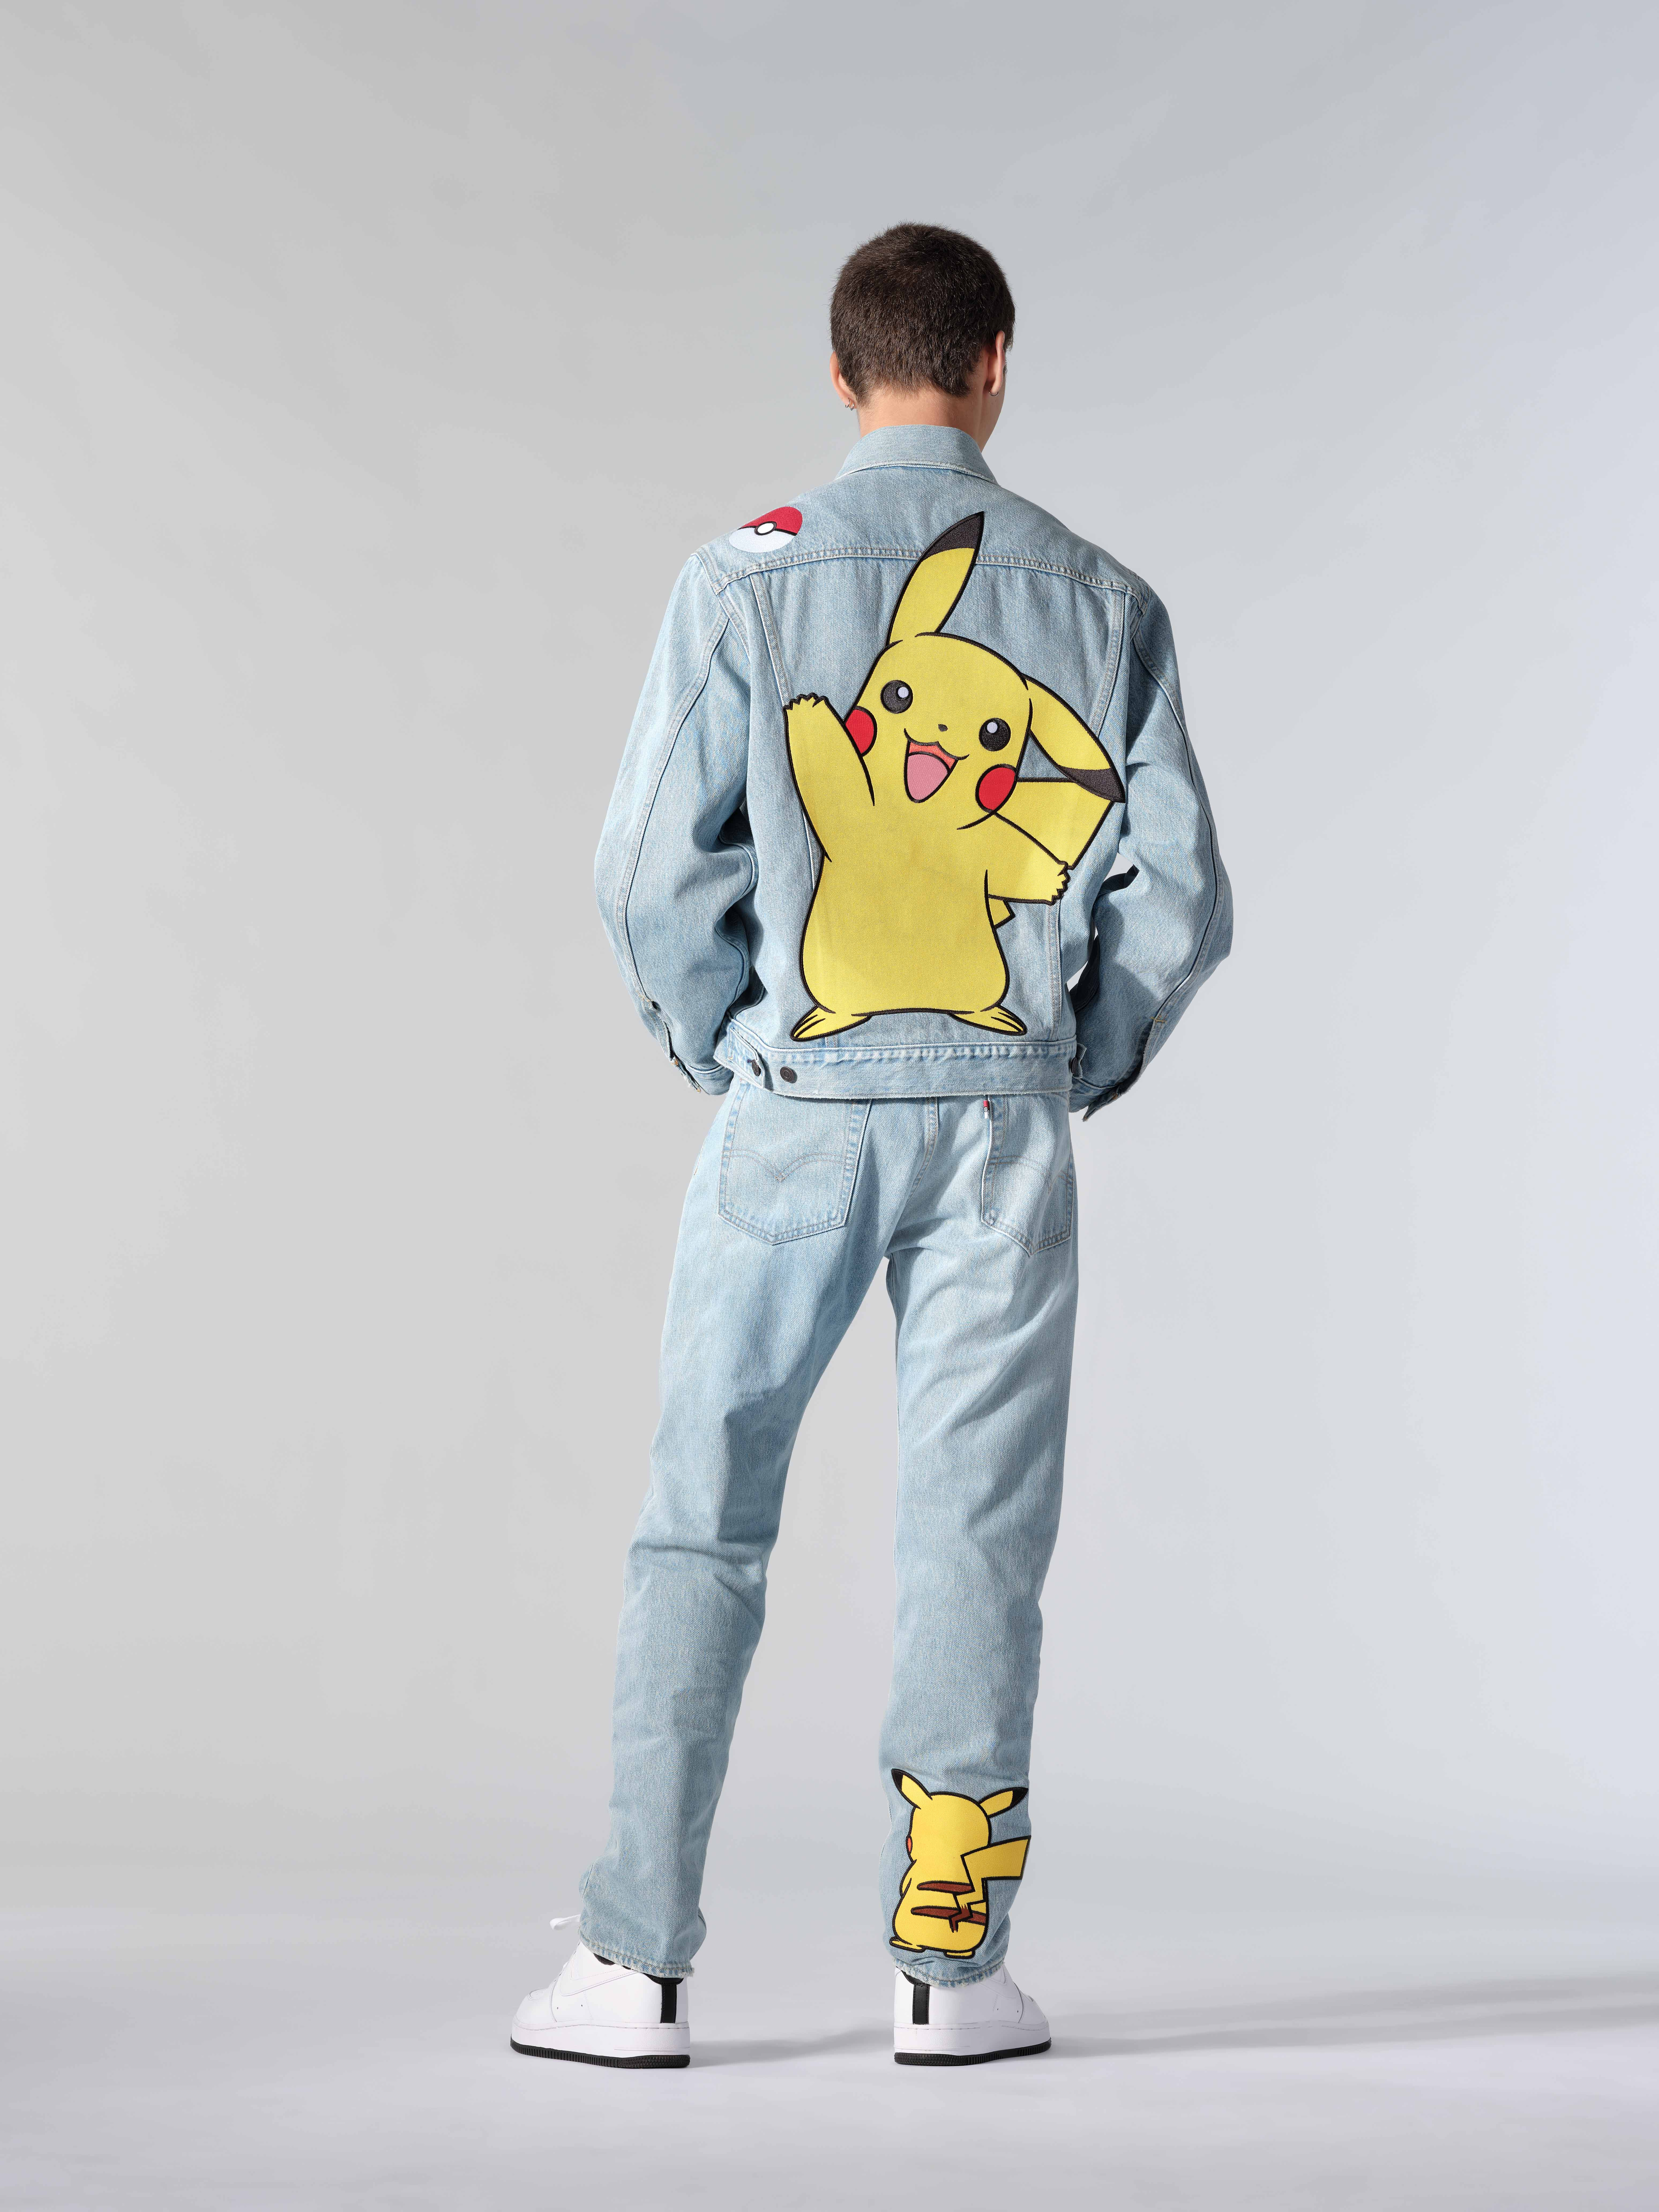 Levi's is celebrating 25 years of Pokémon with this exclusive collaboration